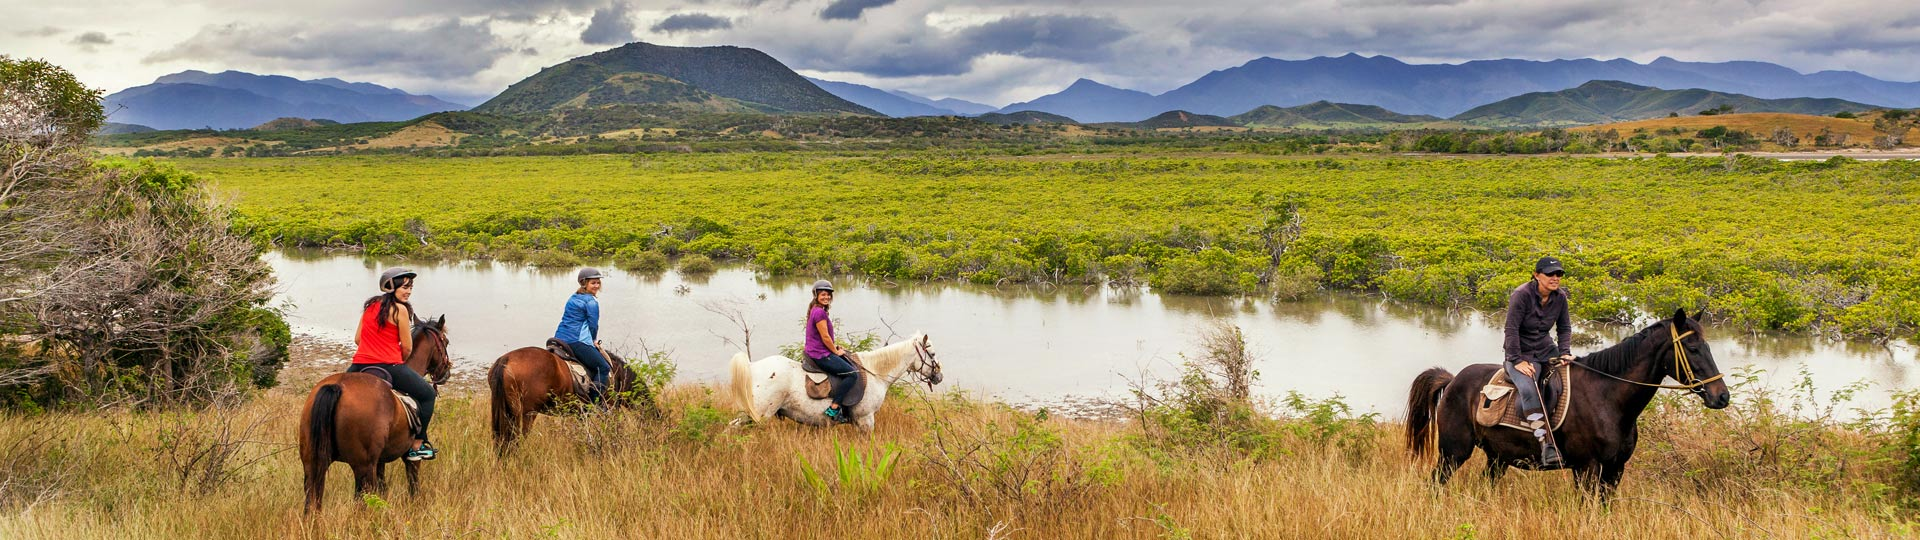 Horse riding in New Caledonia